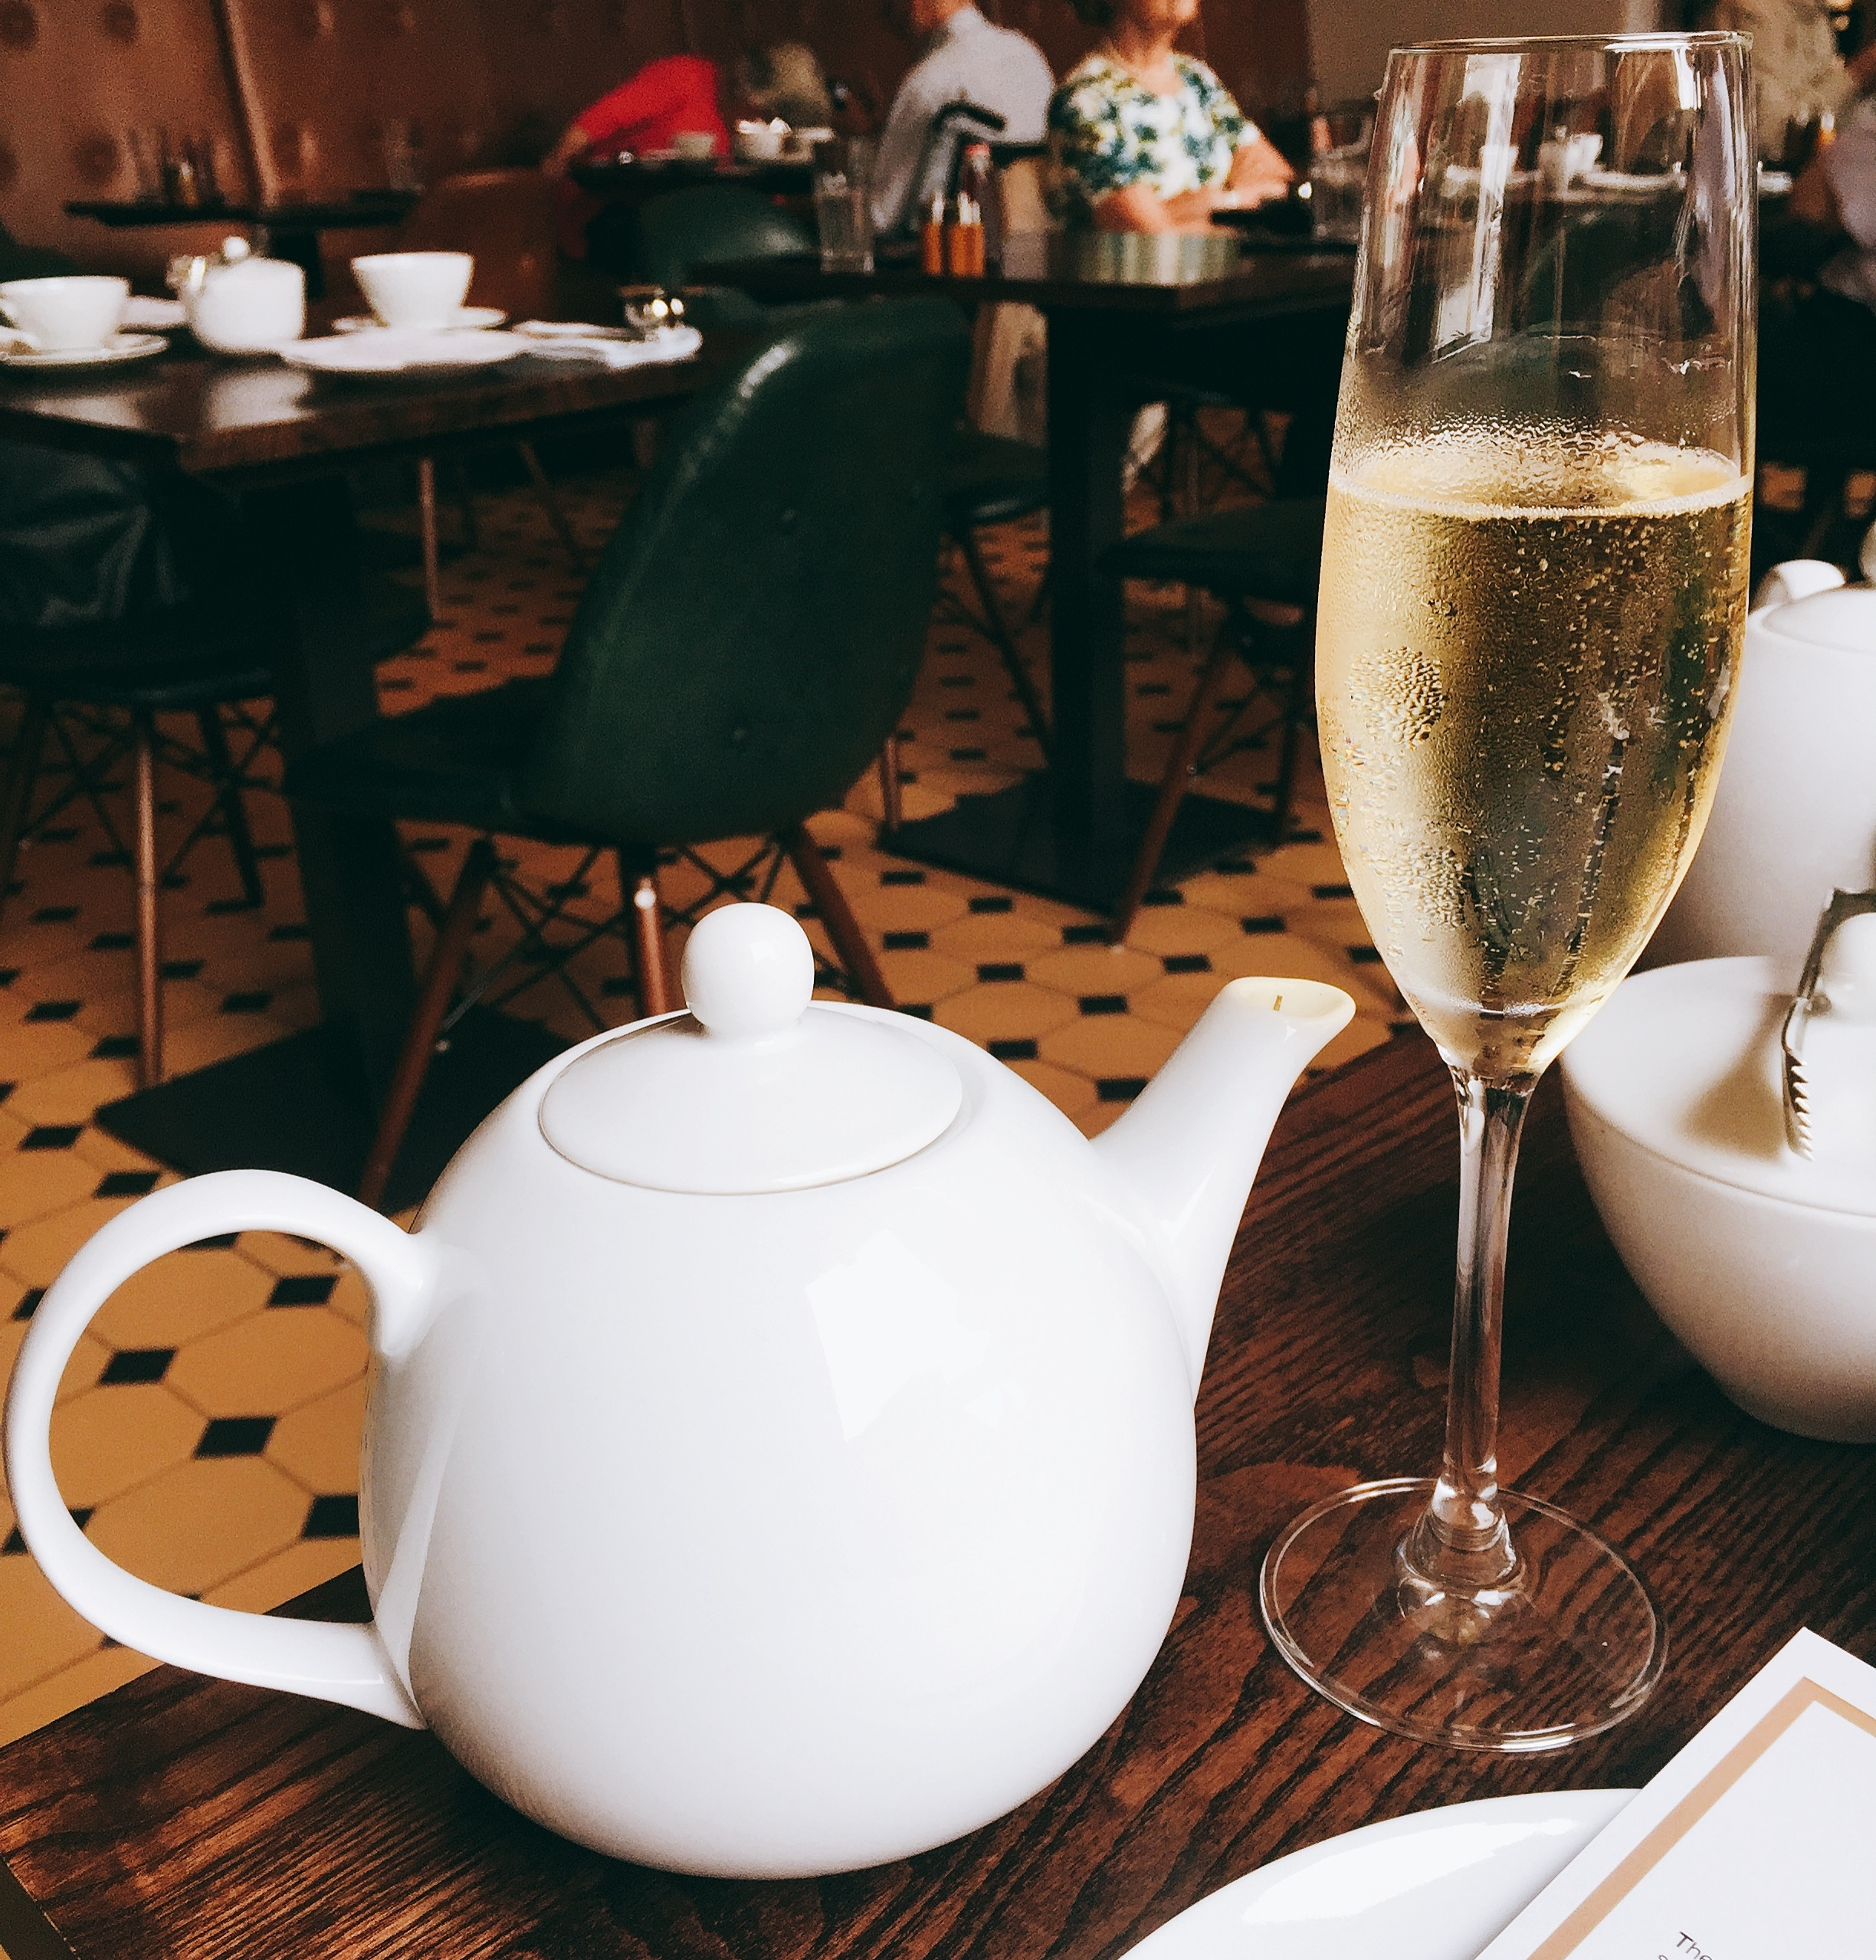 East India Company Tea and Champagne for Afternoon Tea